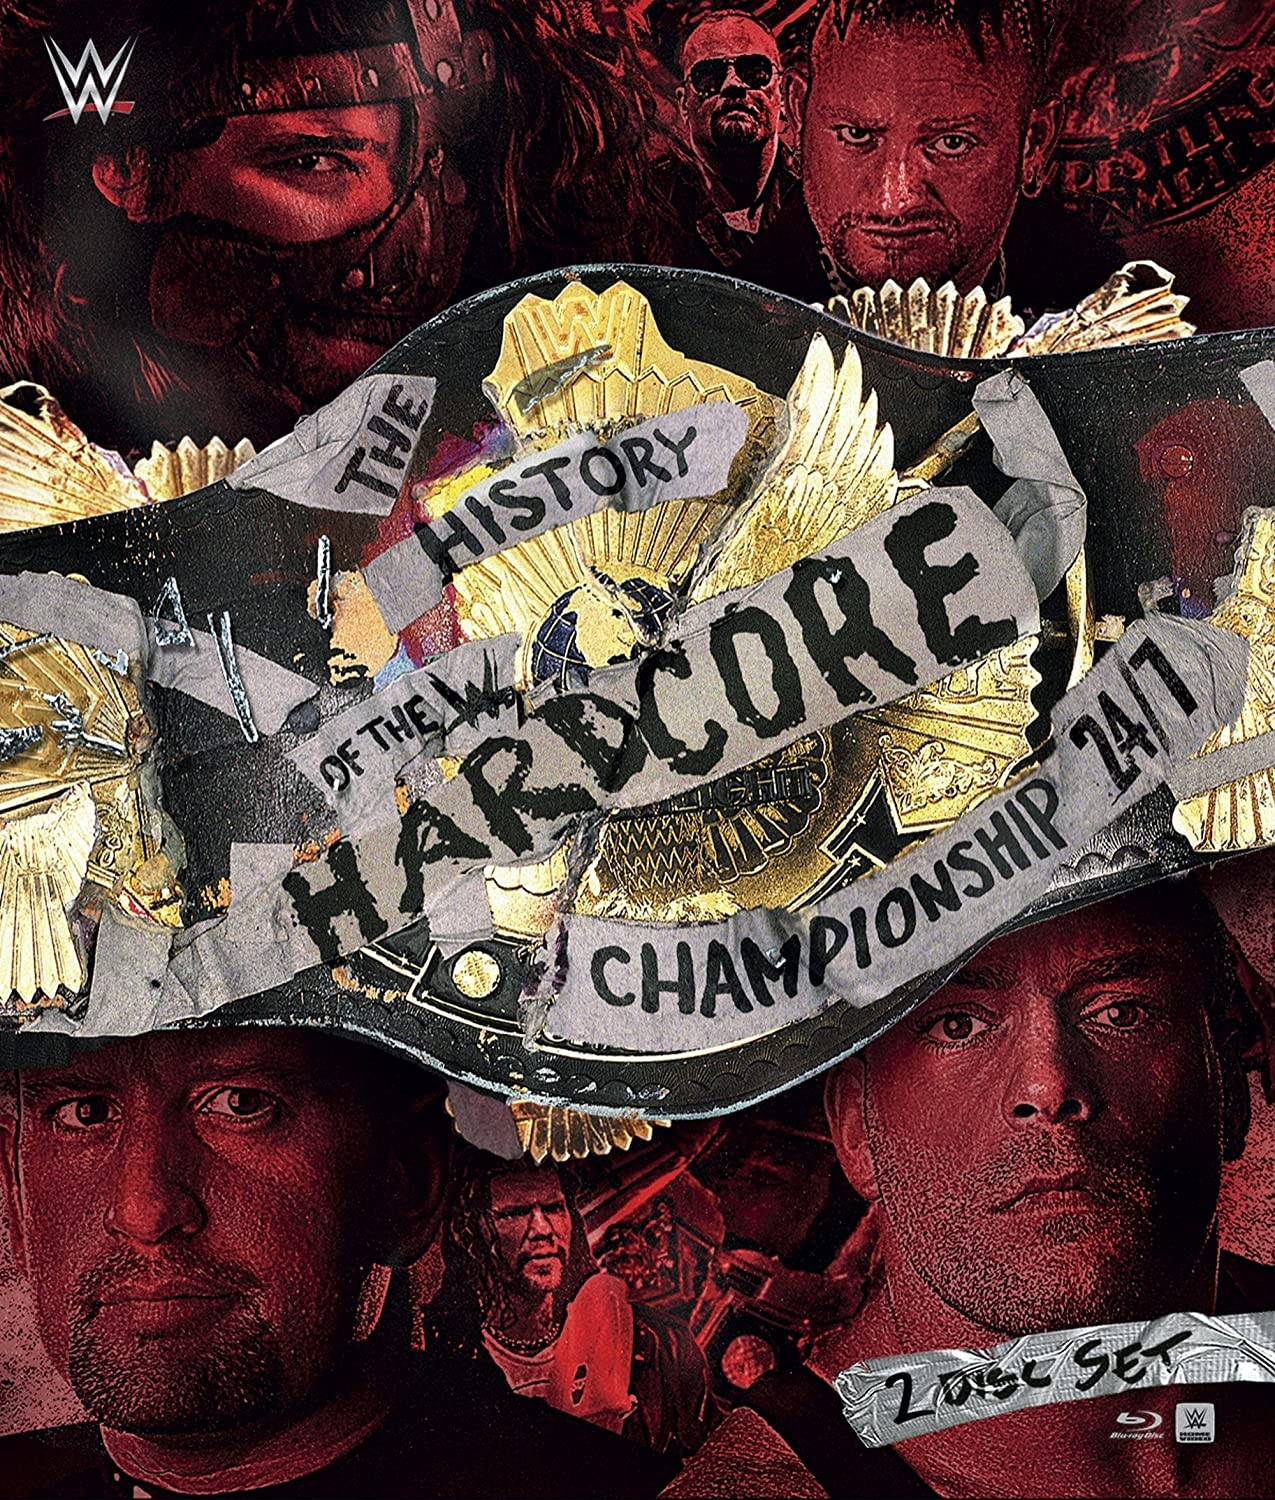 Wwe: History of Wwe Hardcore Championship: 24/7 [Blu-ray] [Import]</p><p>